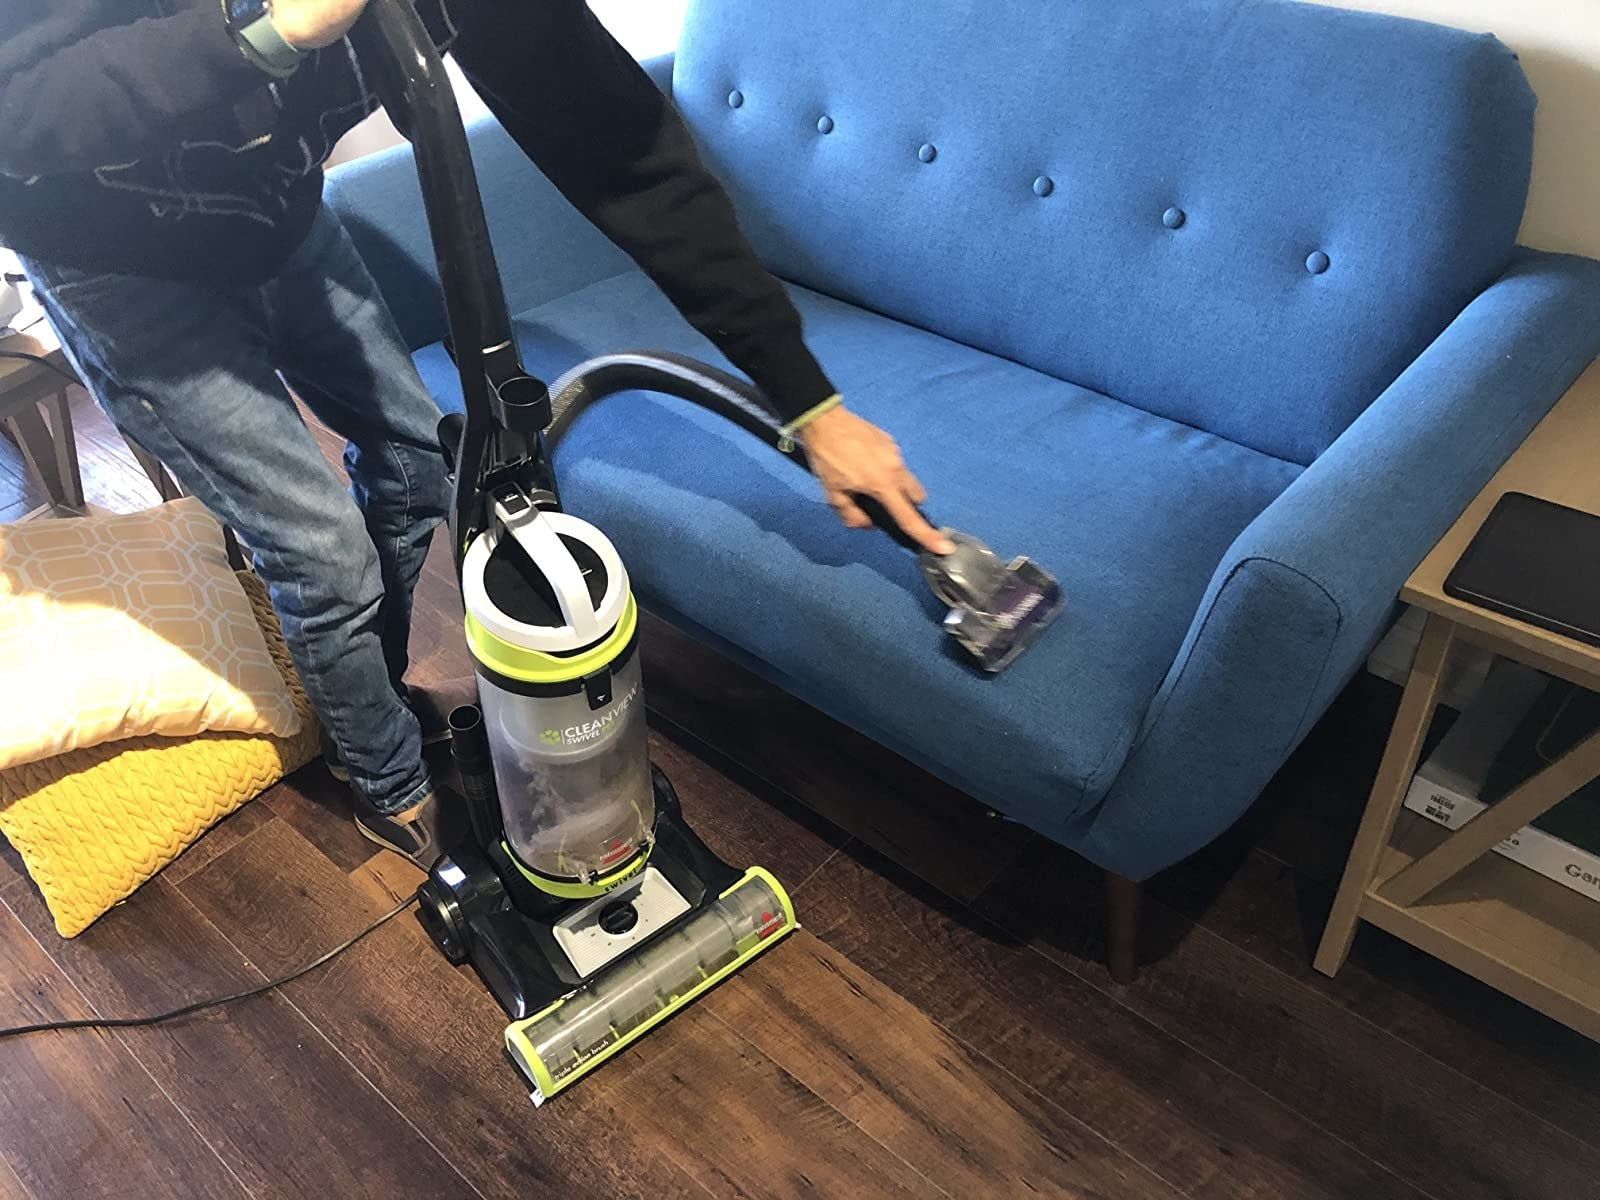 A reviewer uses the vacuum on a couch